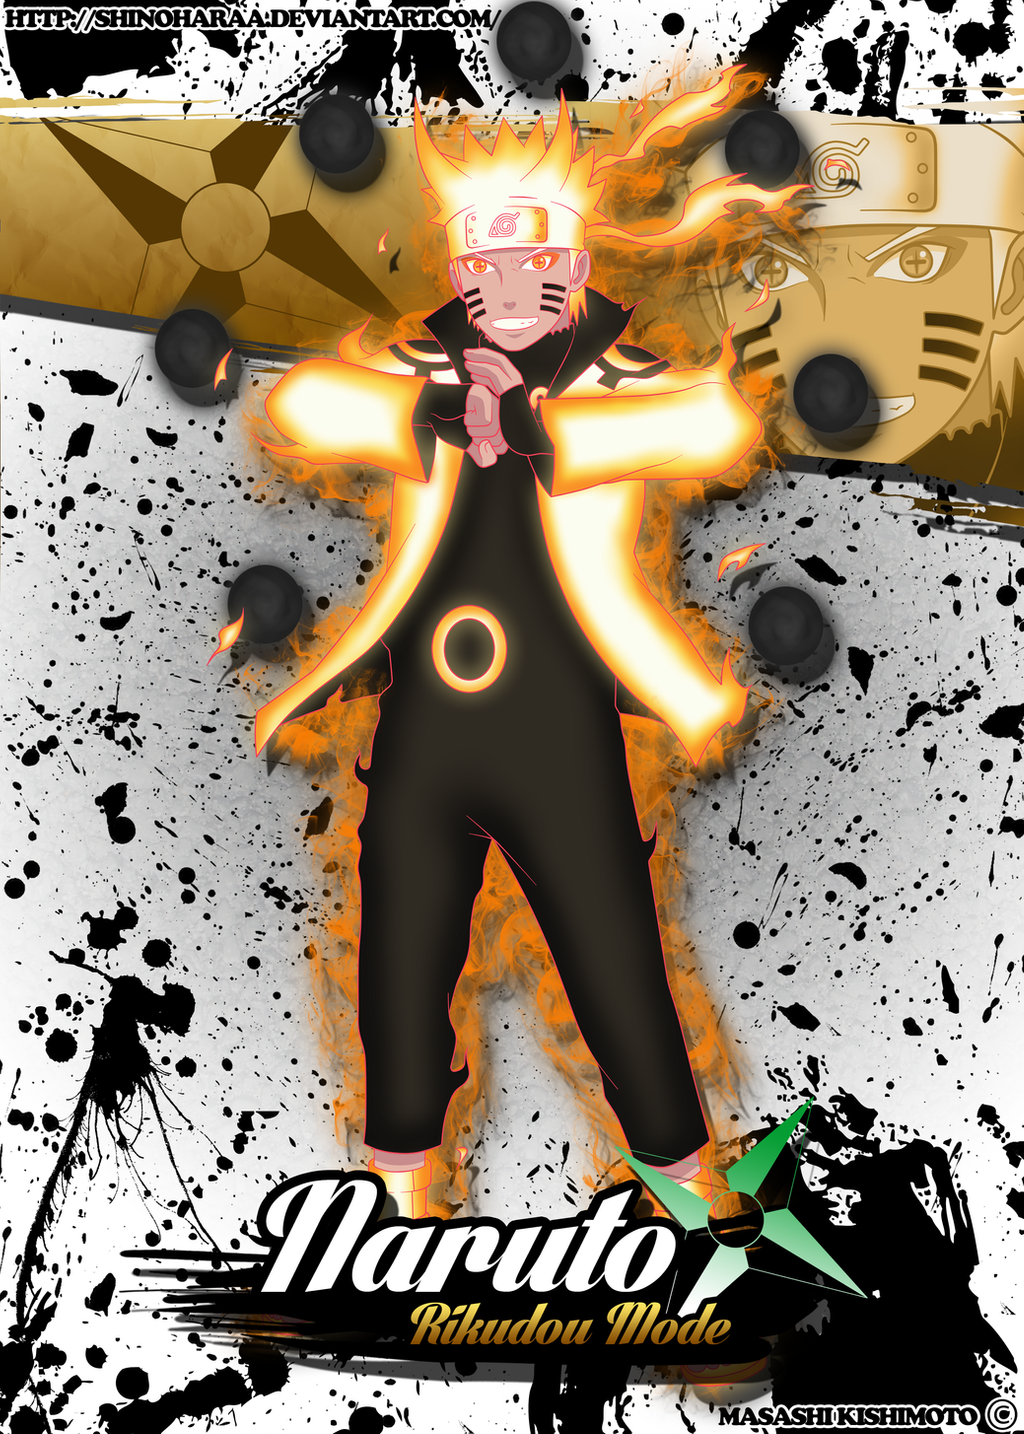 Wallpaper Naruto Rikudou Mode